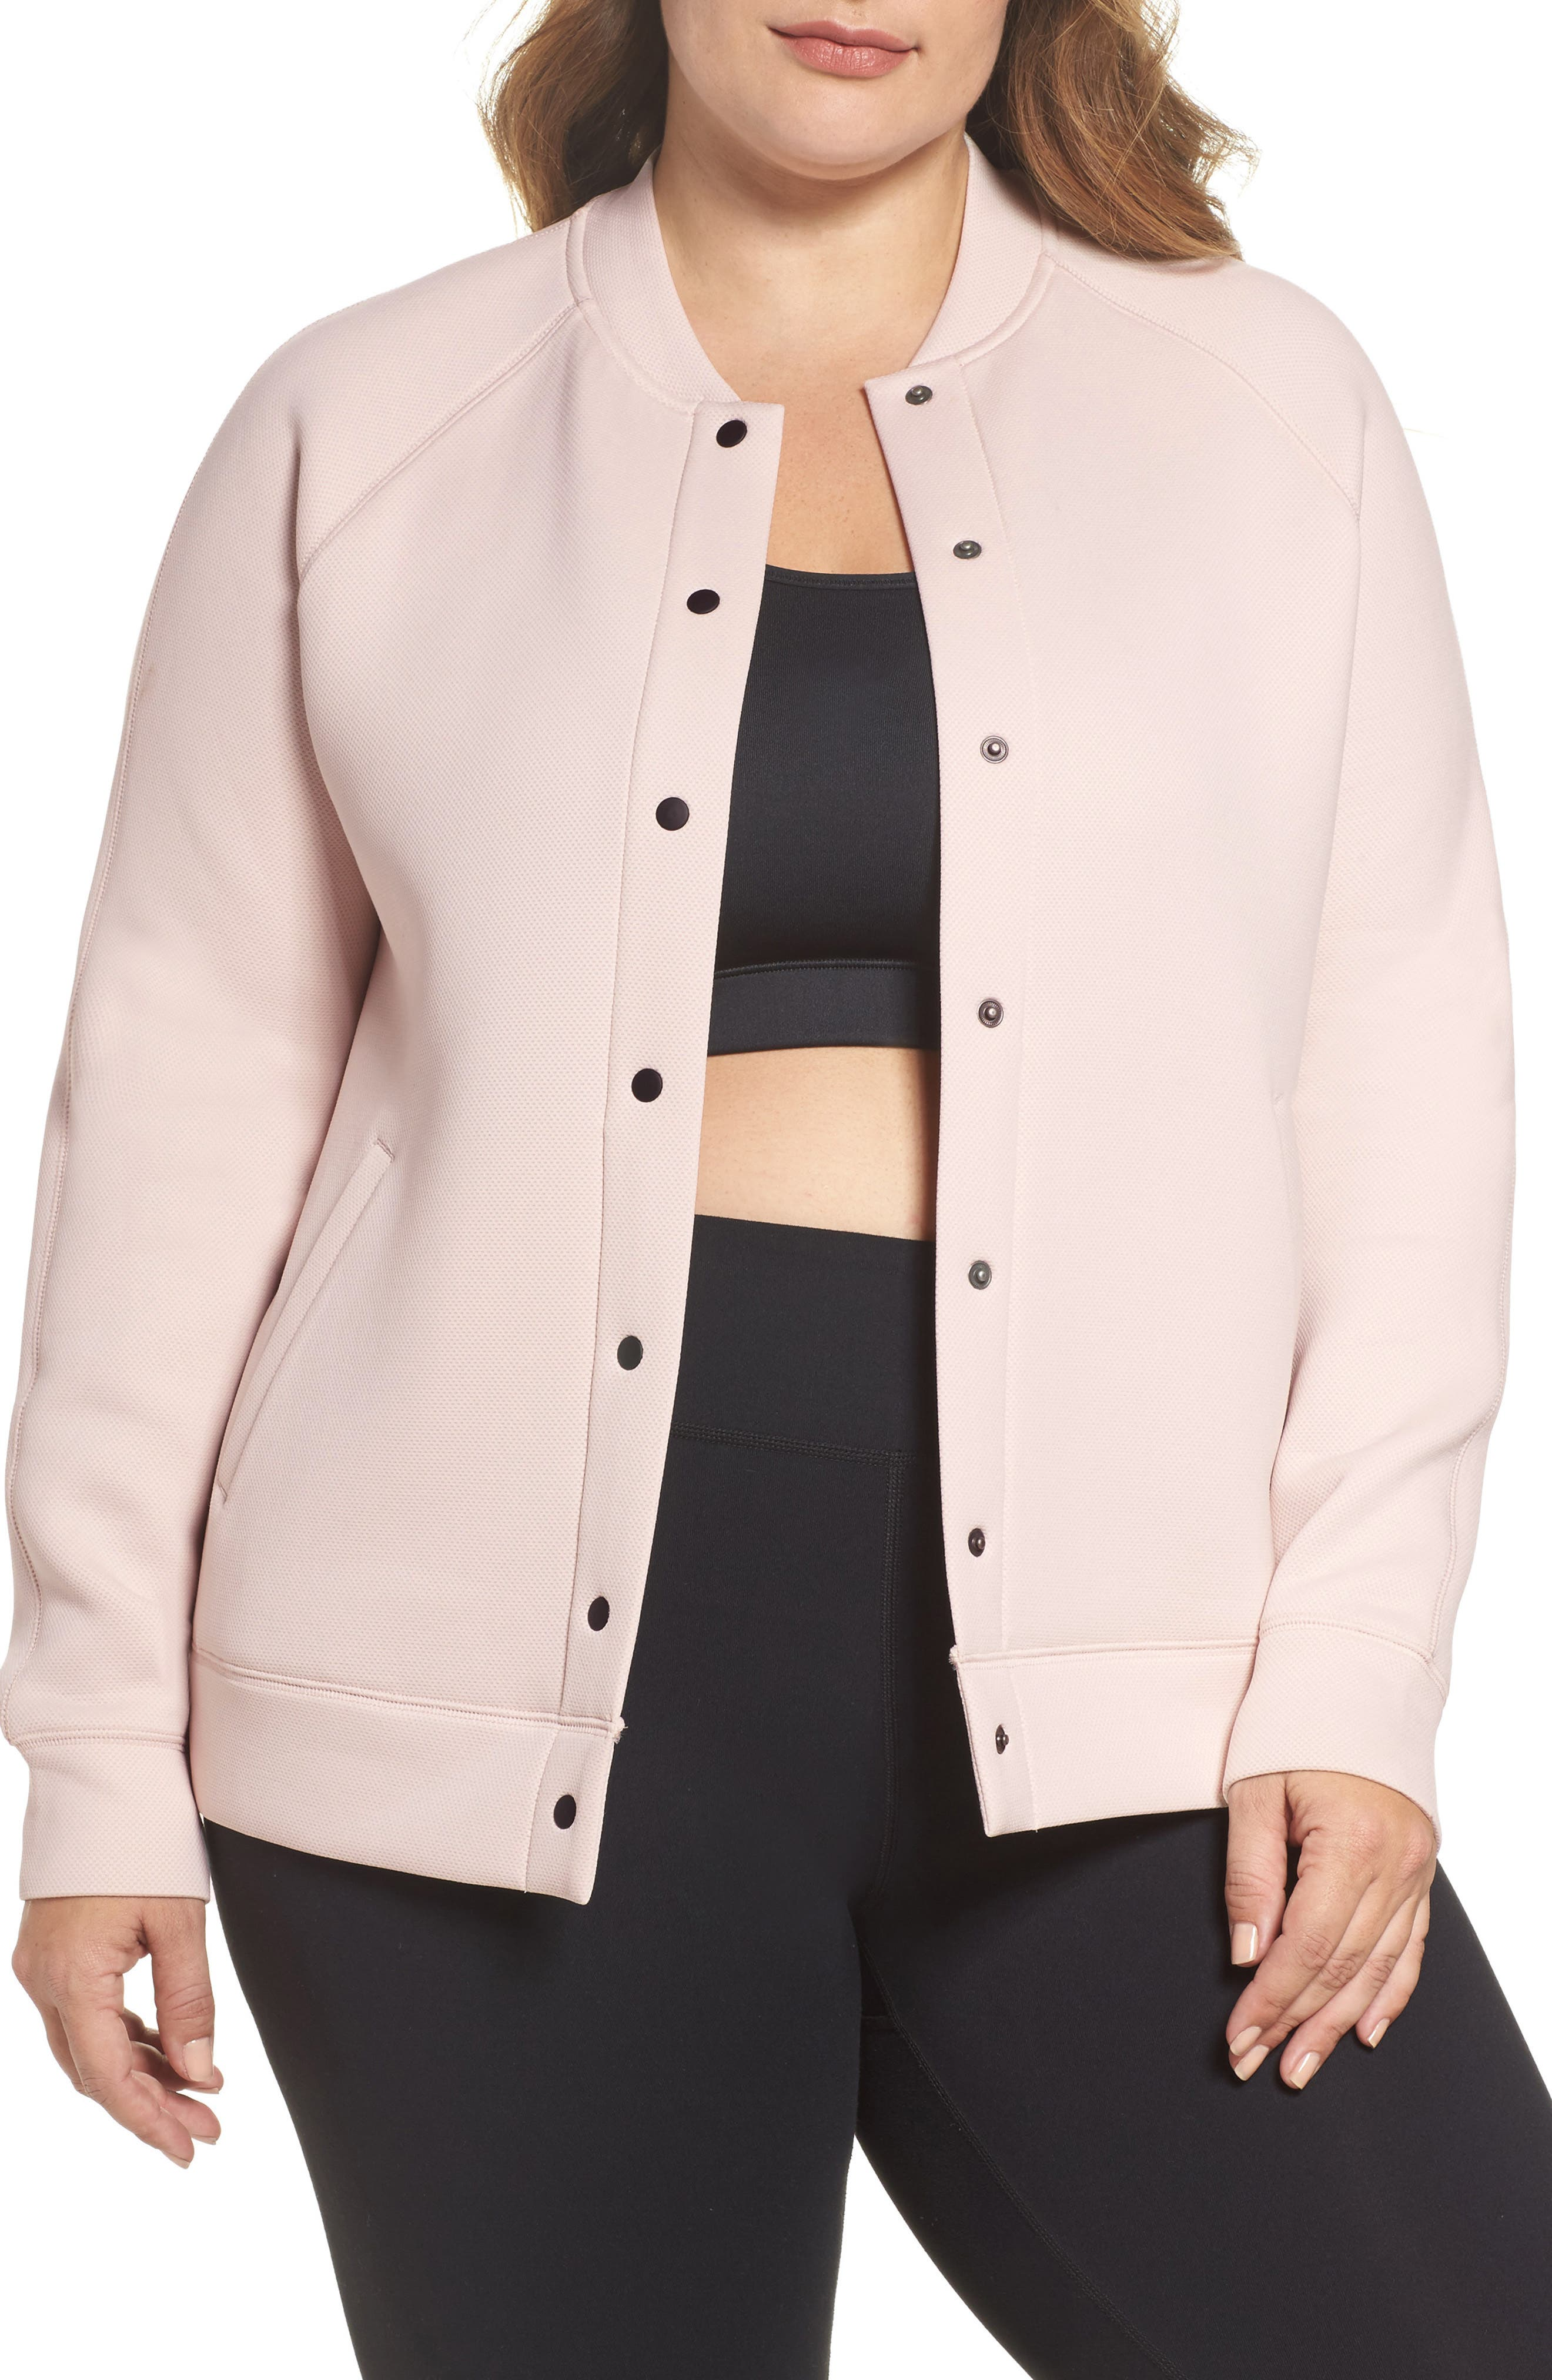 Arise Luxe Bomber Jacket,                         Main,                         color, Pink Morganite